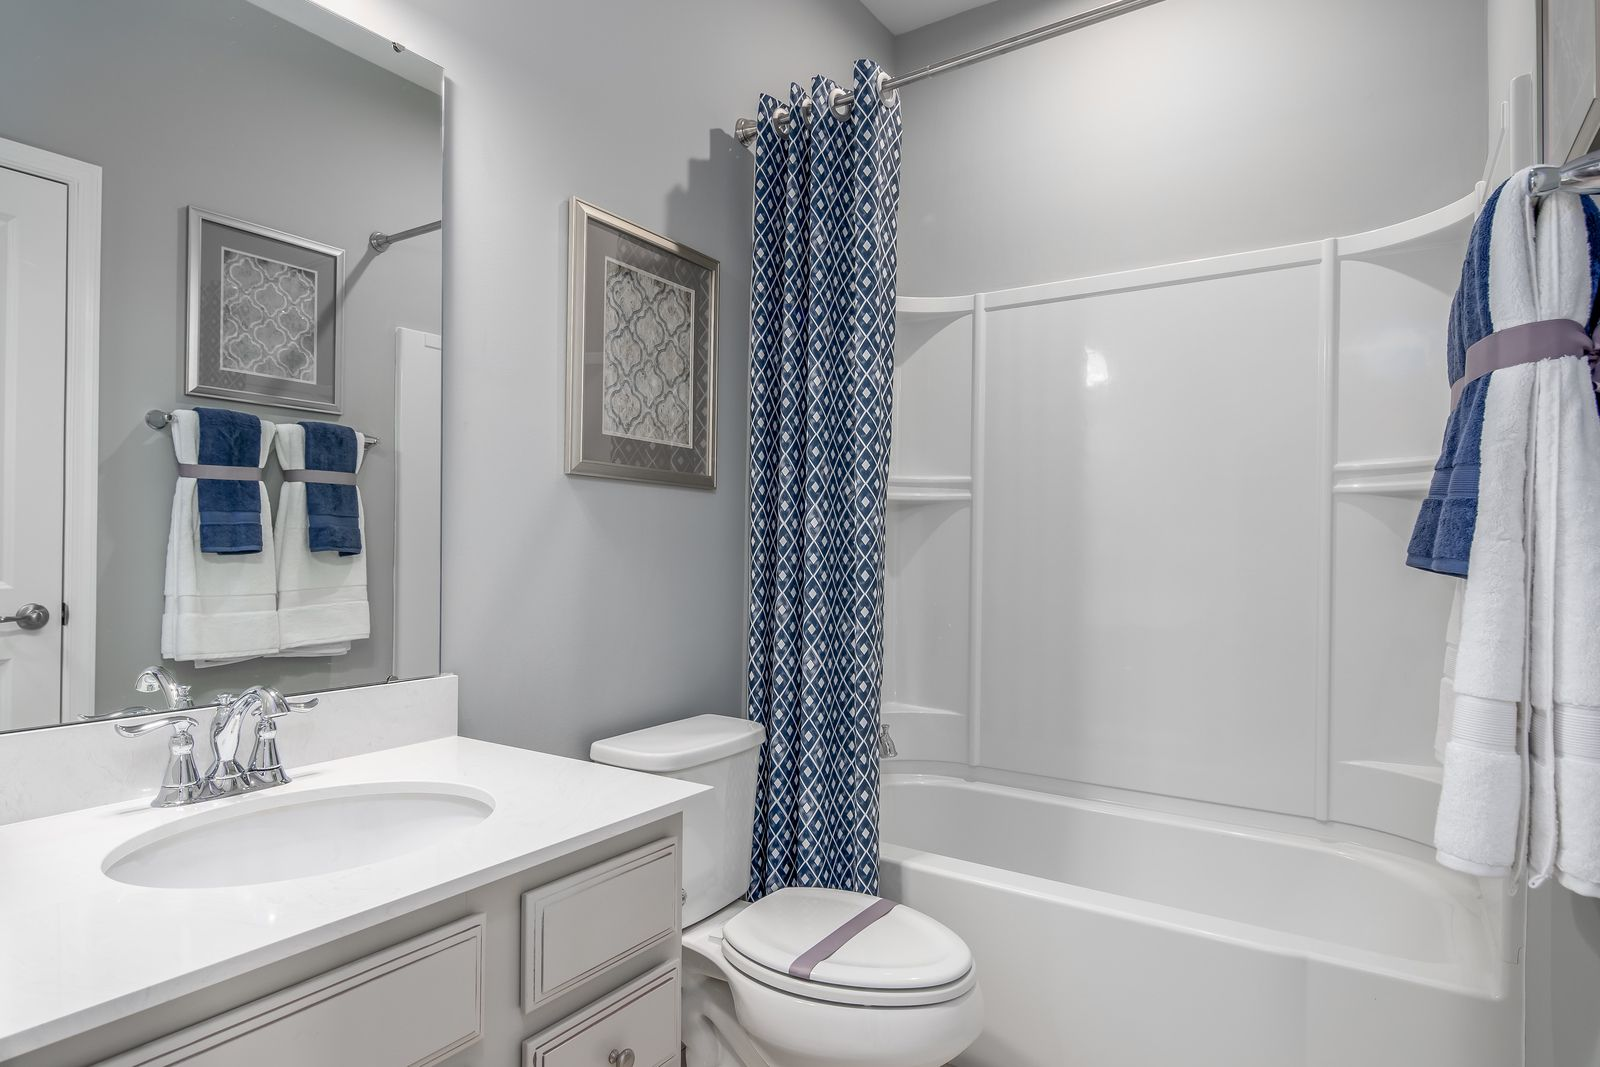 Bathroom featured in the Mozart Rear 2-Car Garage By Ryan Homes in Chicago, IL